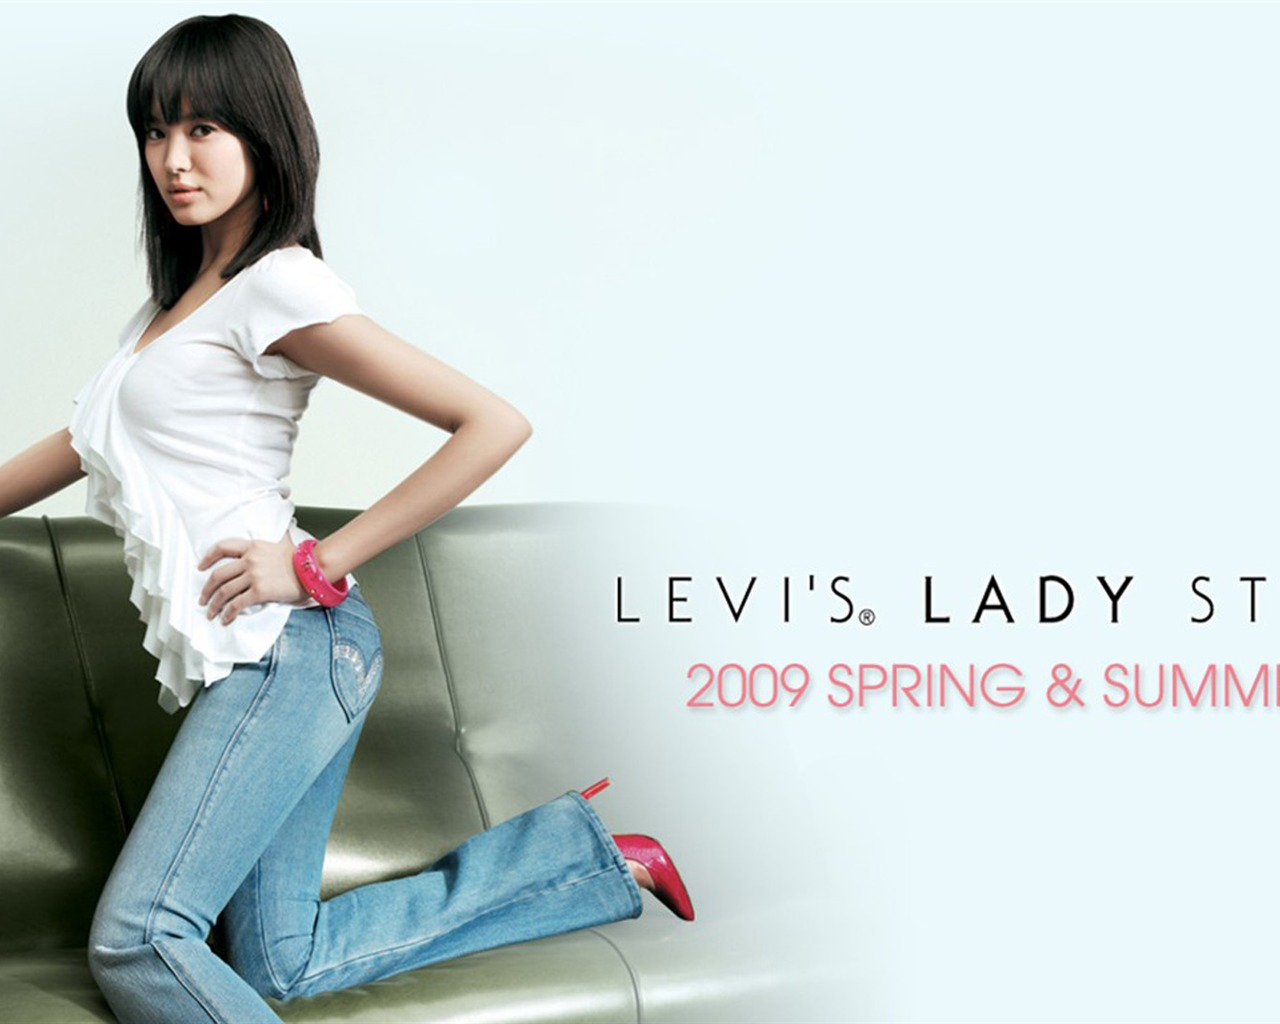 levis lady style clothing - photo #18